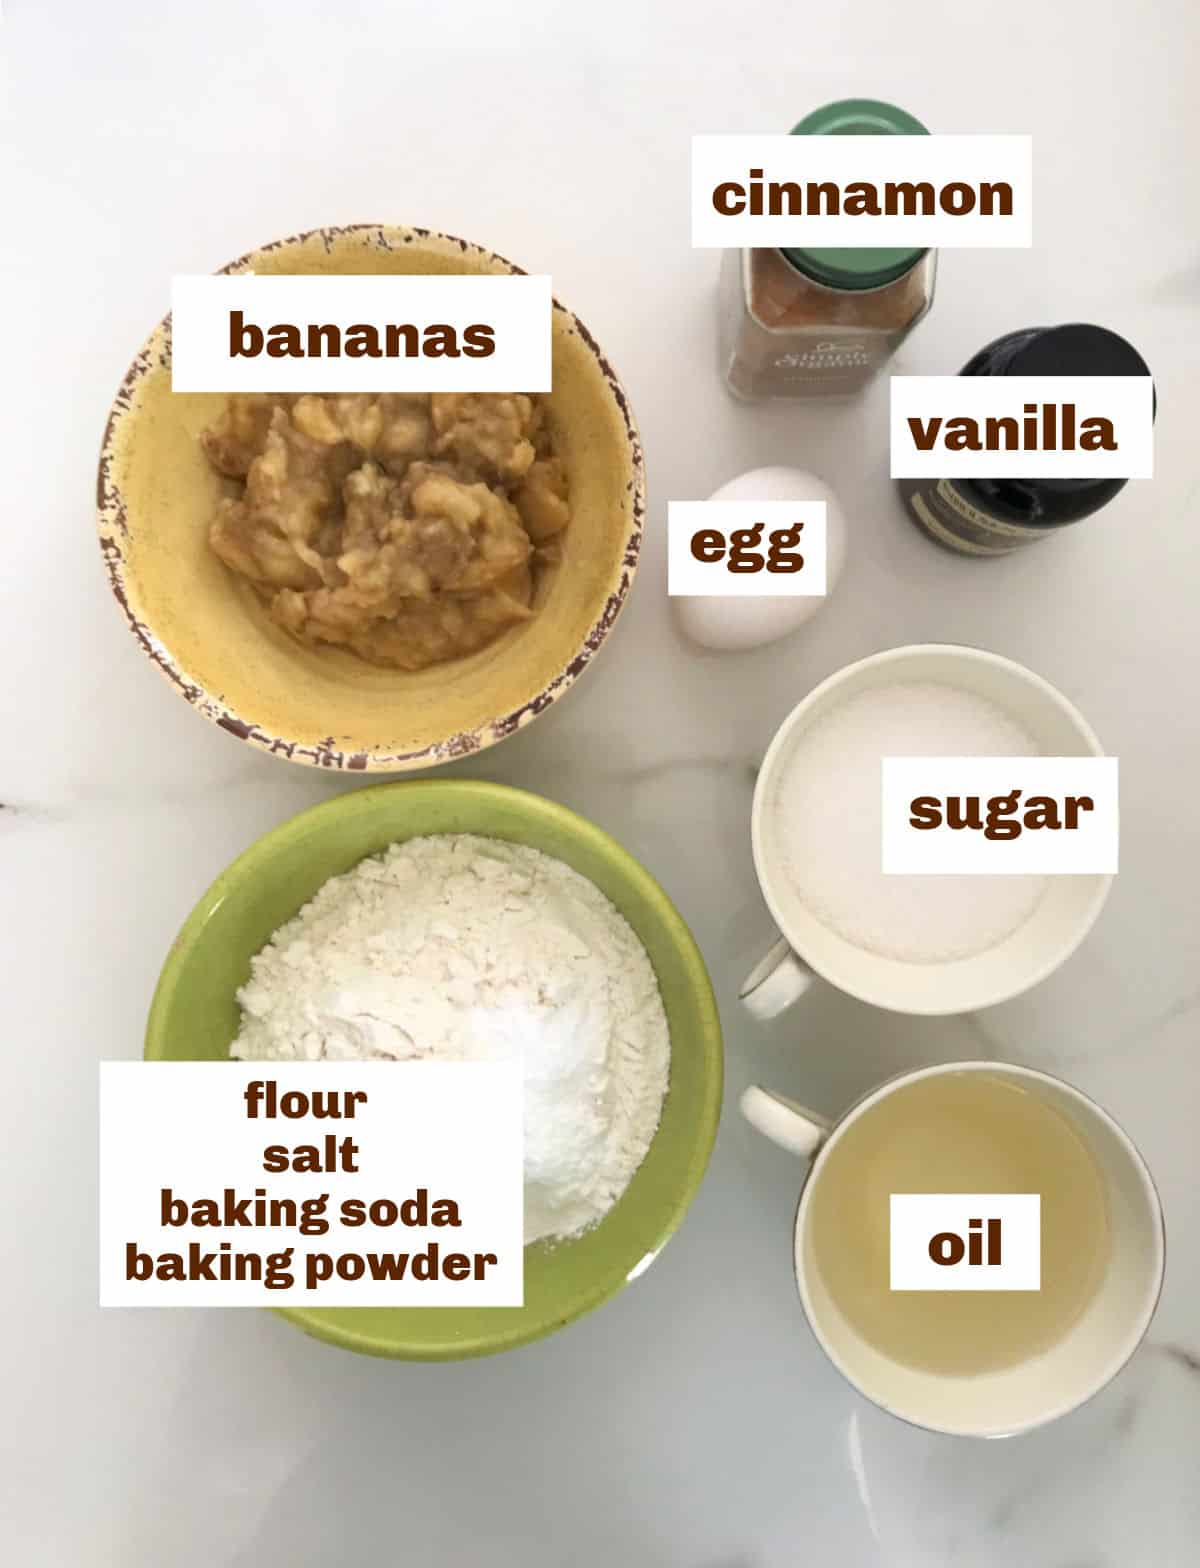 Bowls with ingredients for banana cake on a white surface